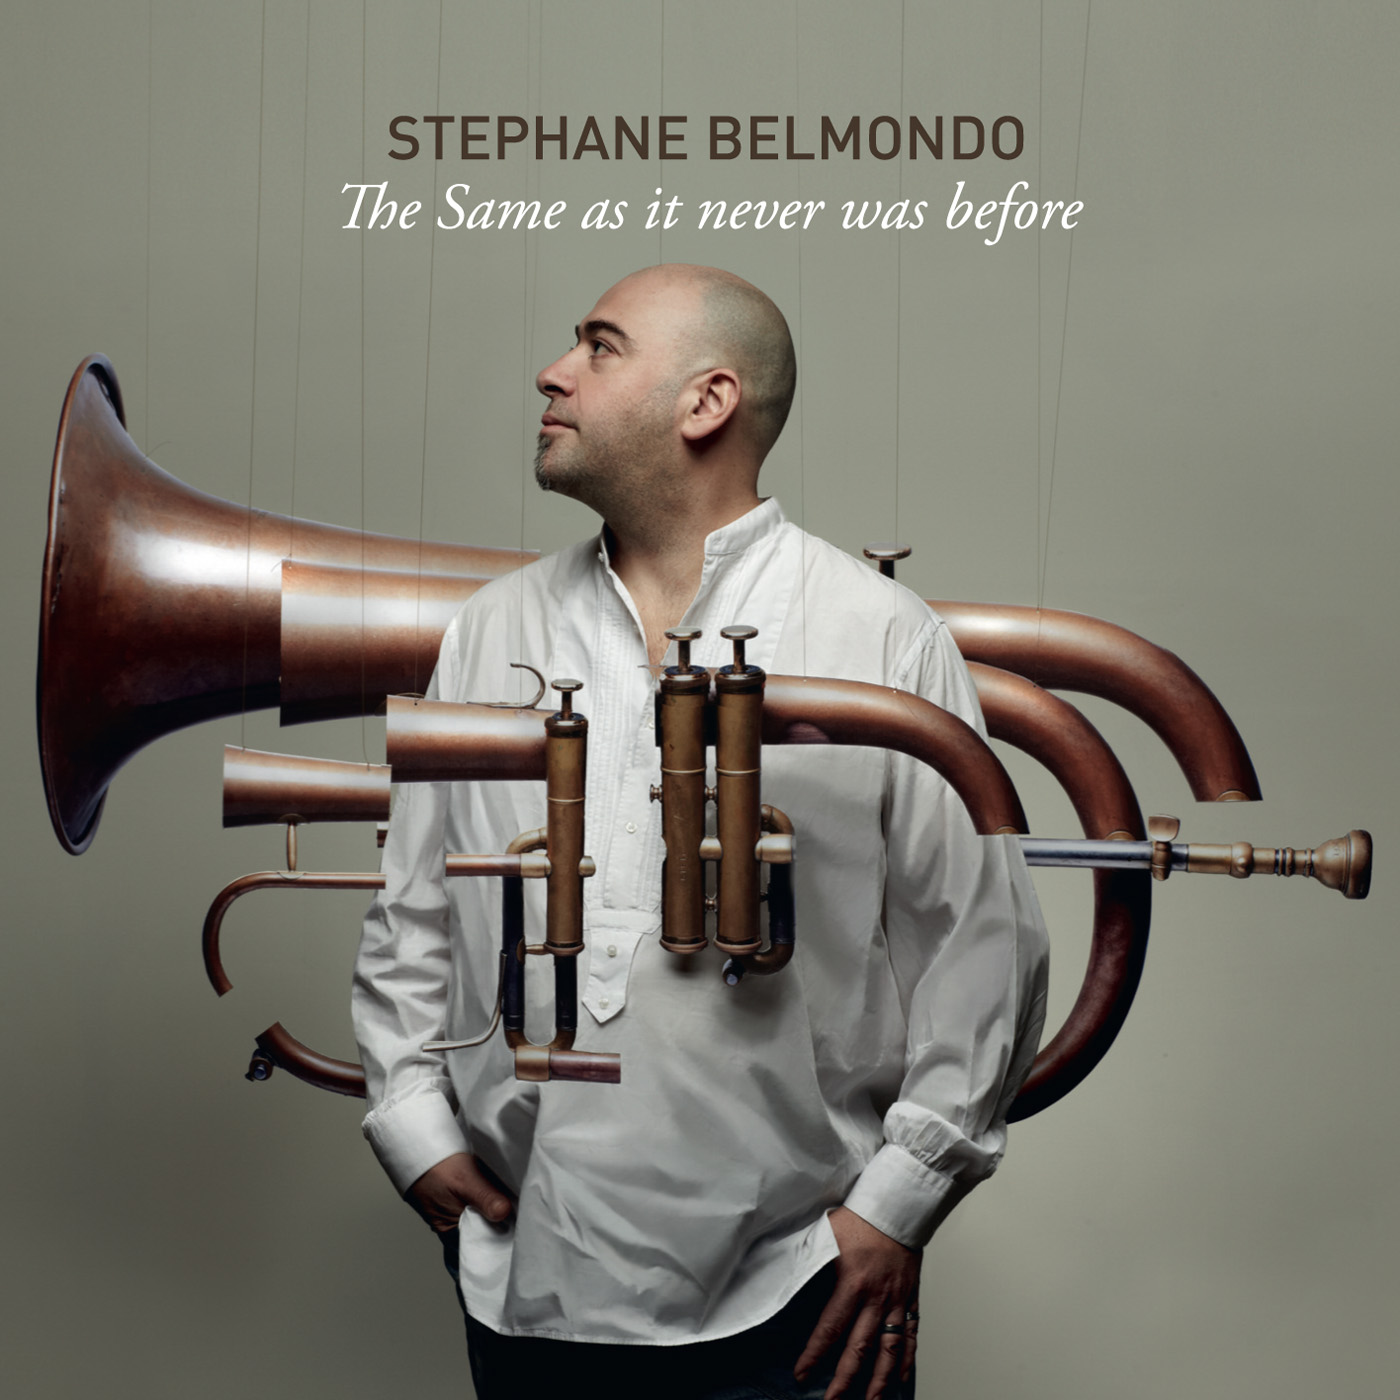 The Same As It Never Was Before by Stephane Belmondo cover